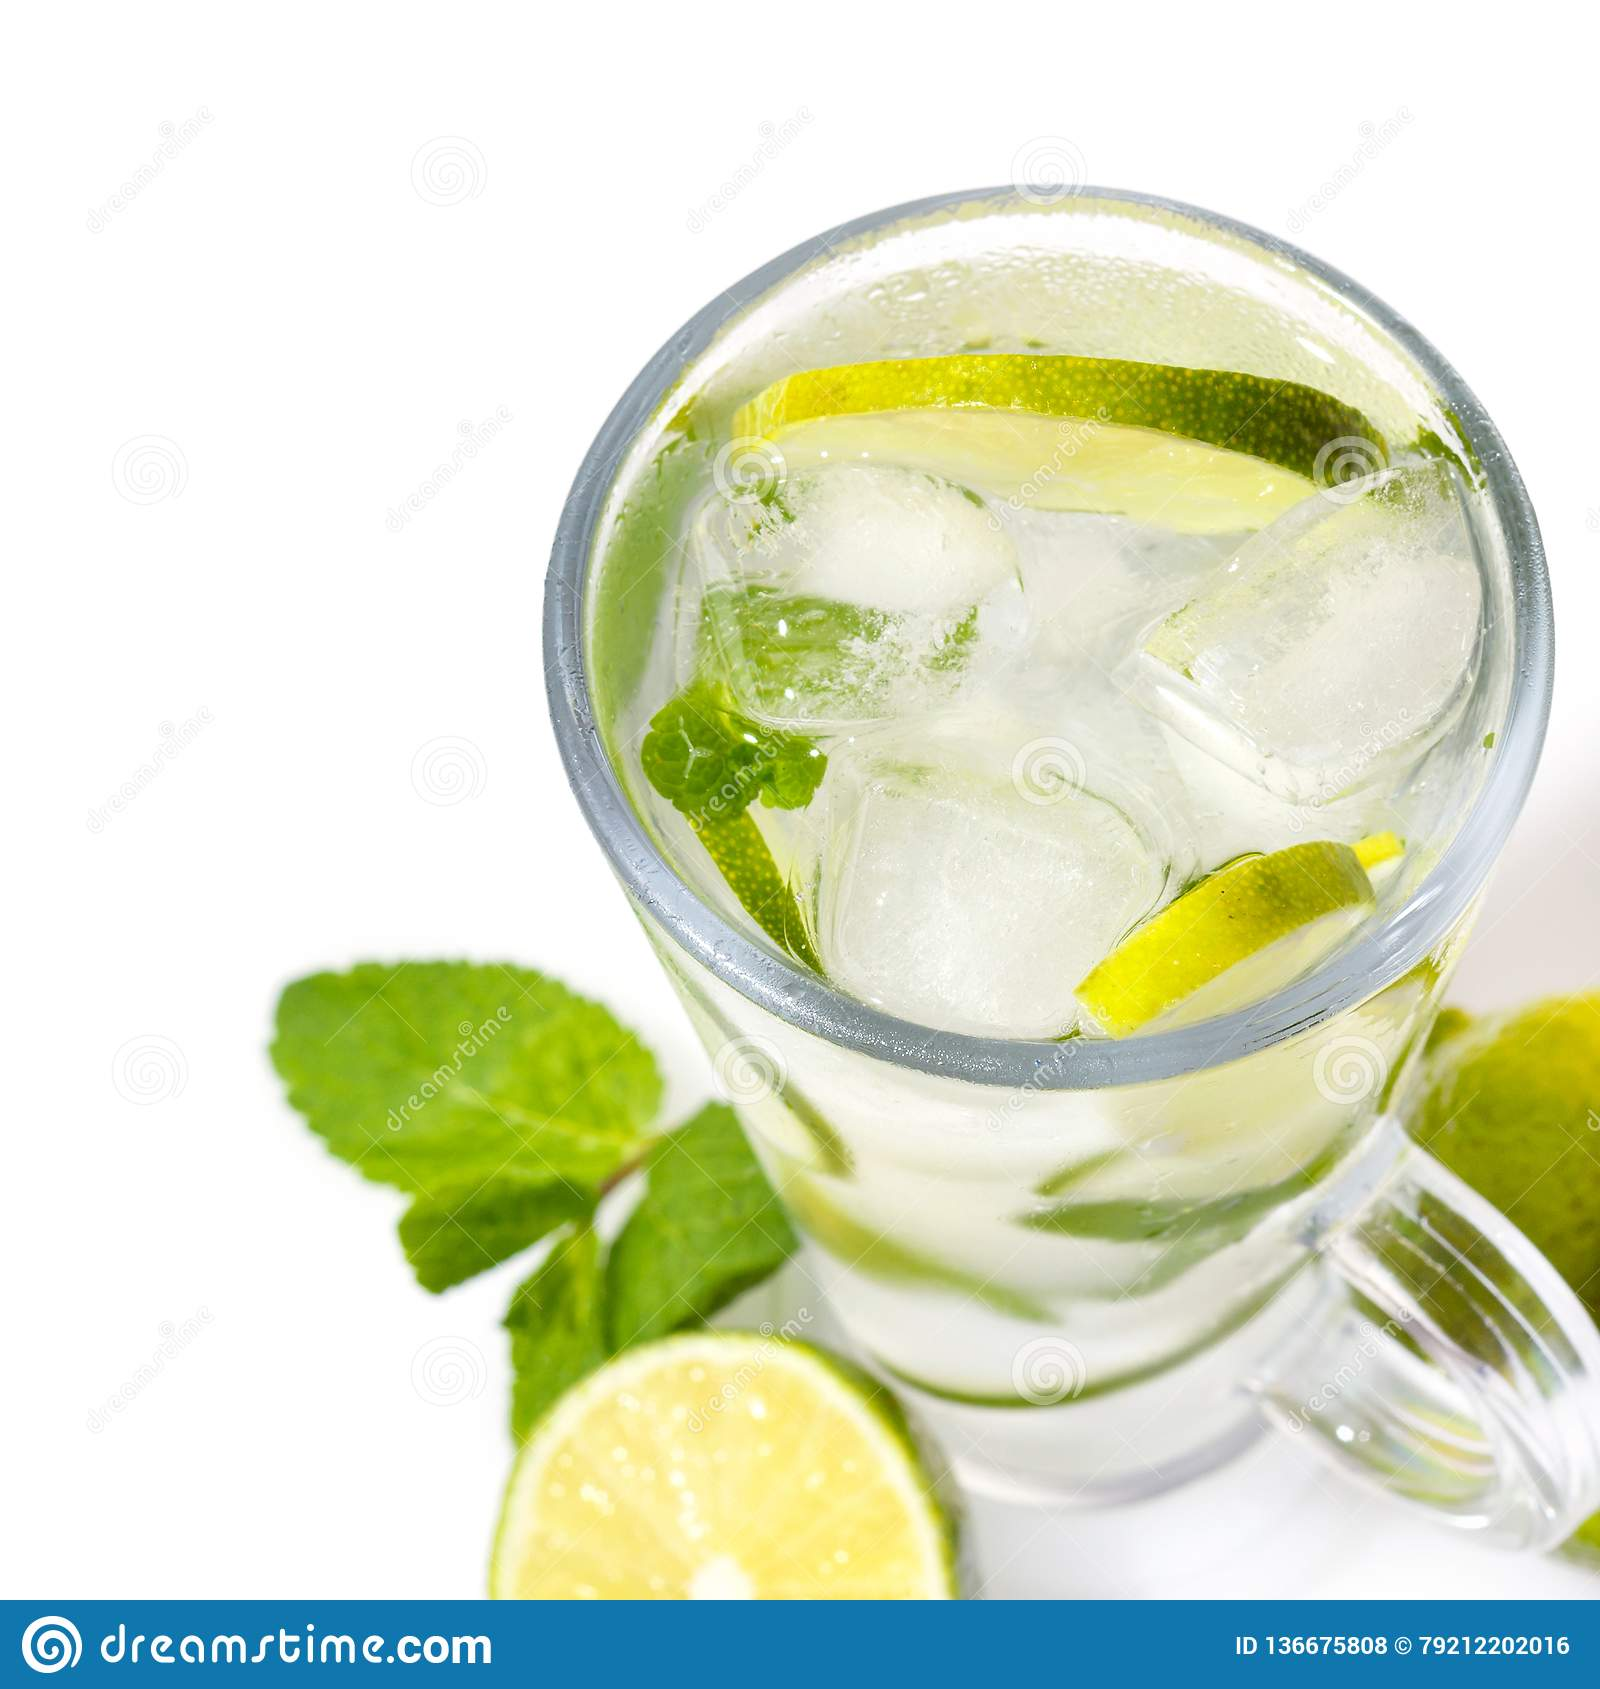 Isolement de cocktail de Mojito sur un blanc